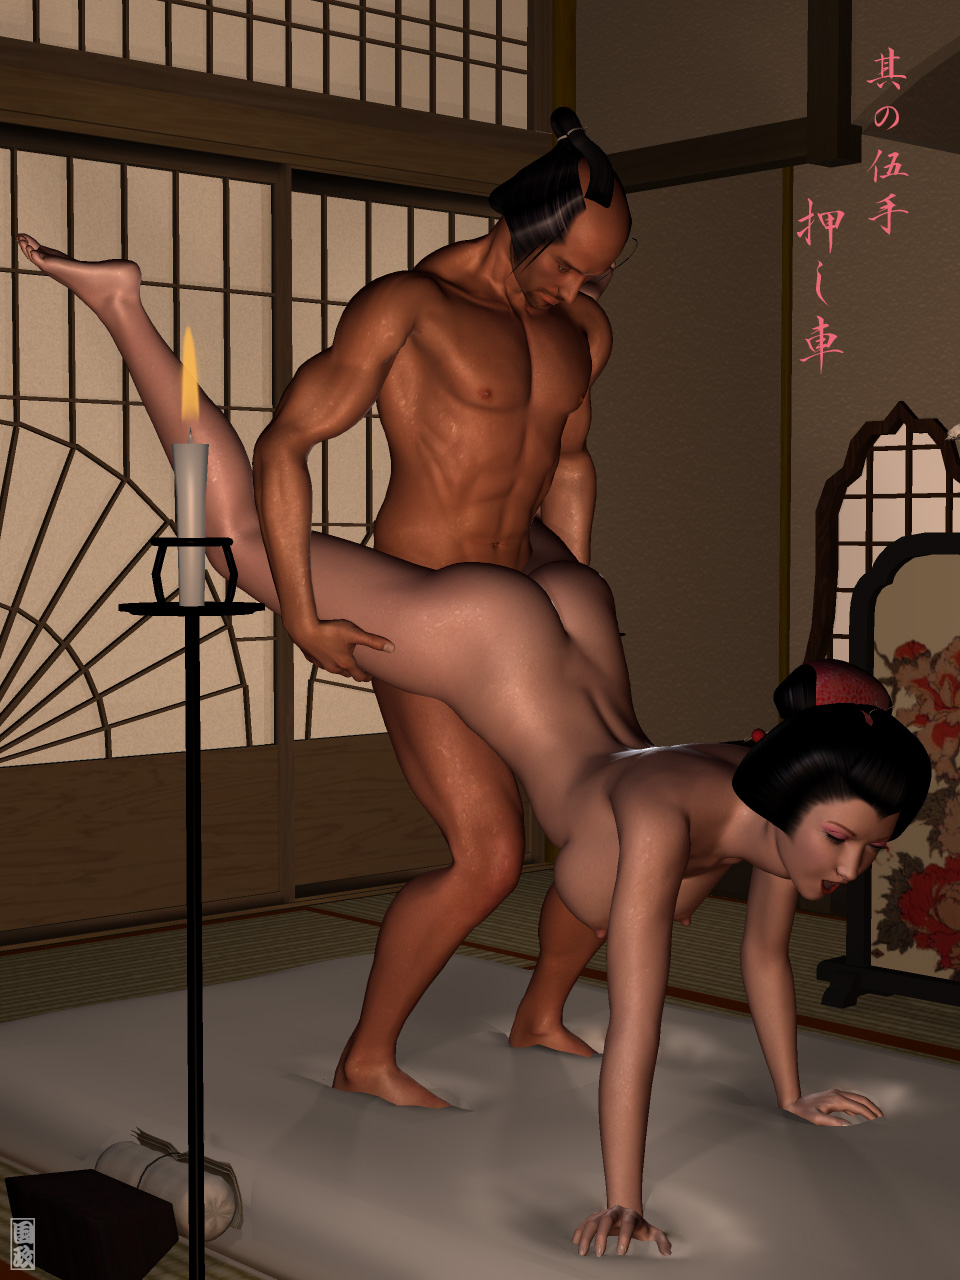 3d sex position photos sex images